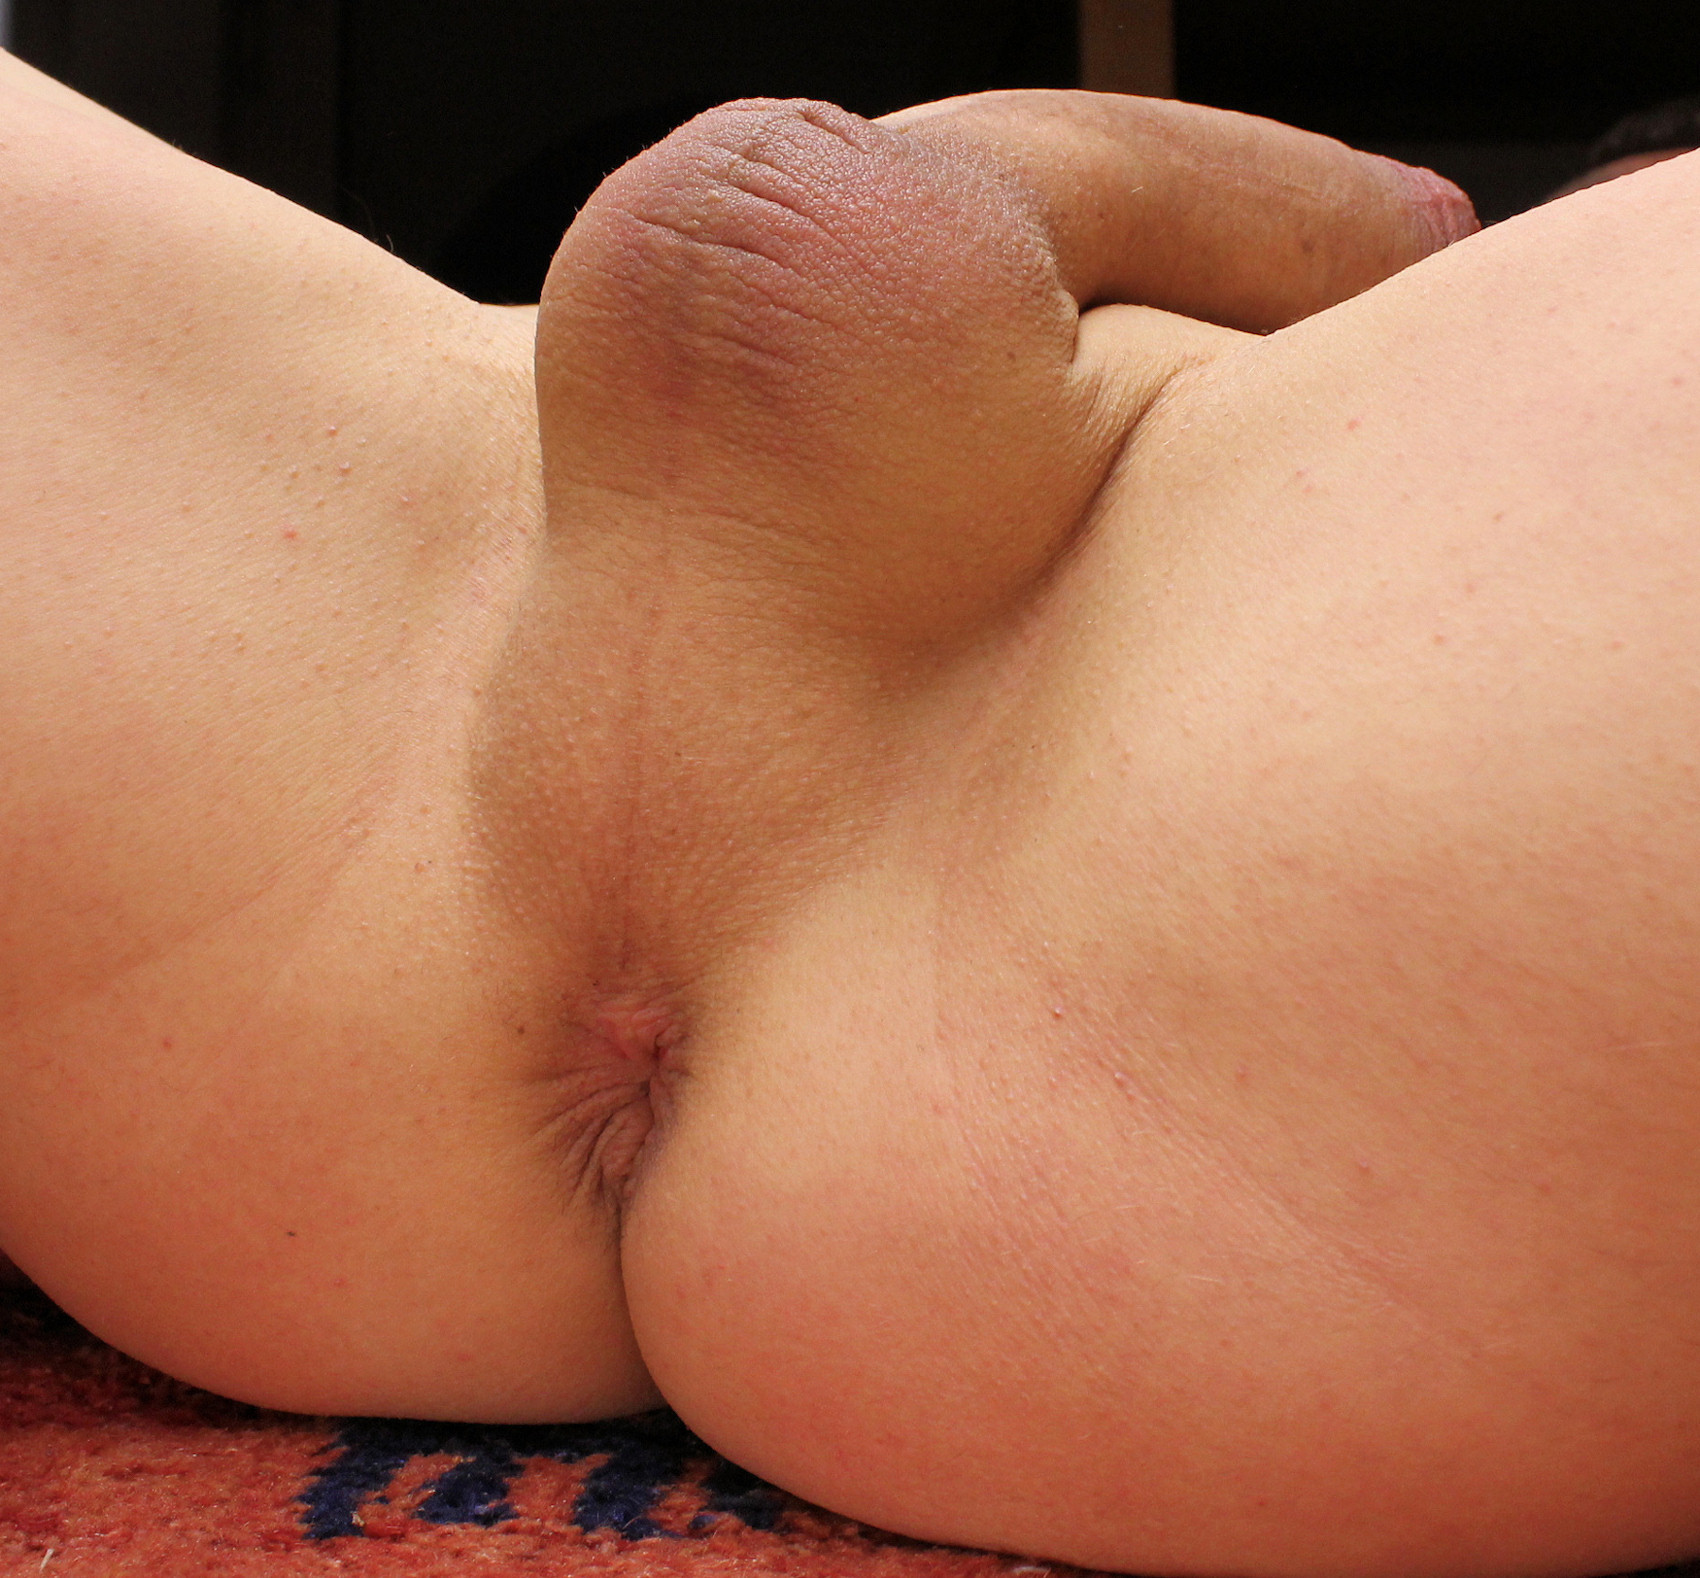 Shaved cock balls ass naked that